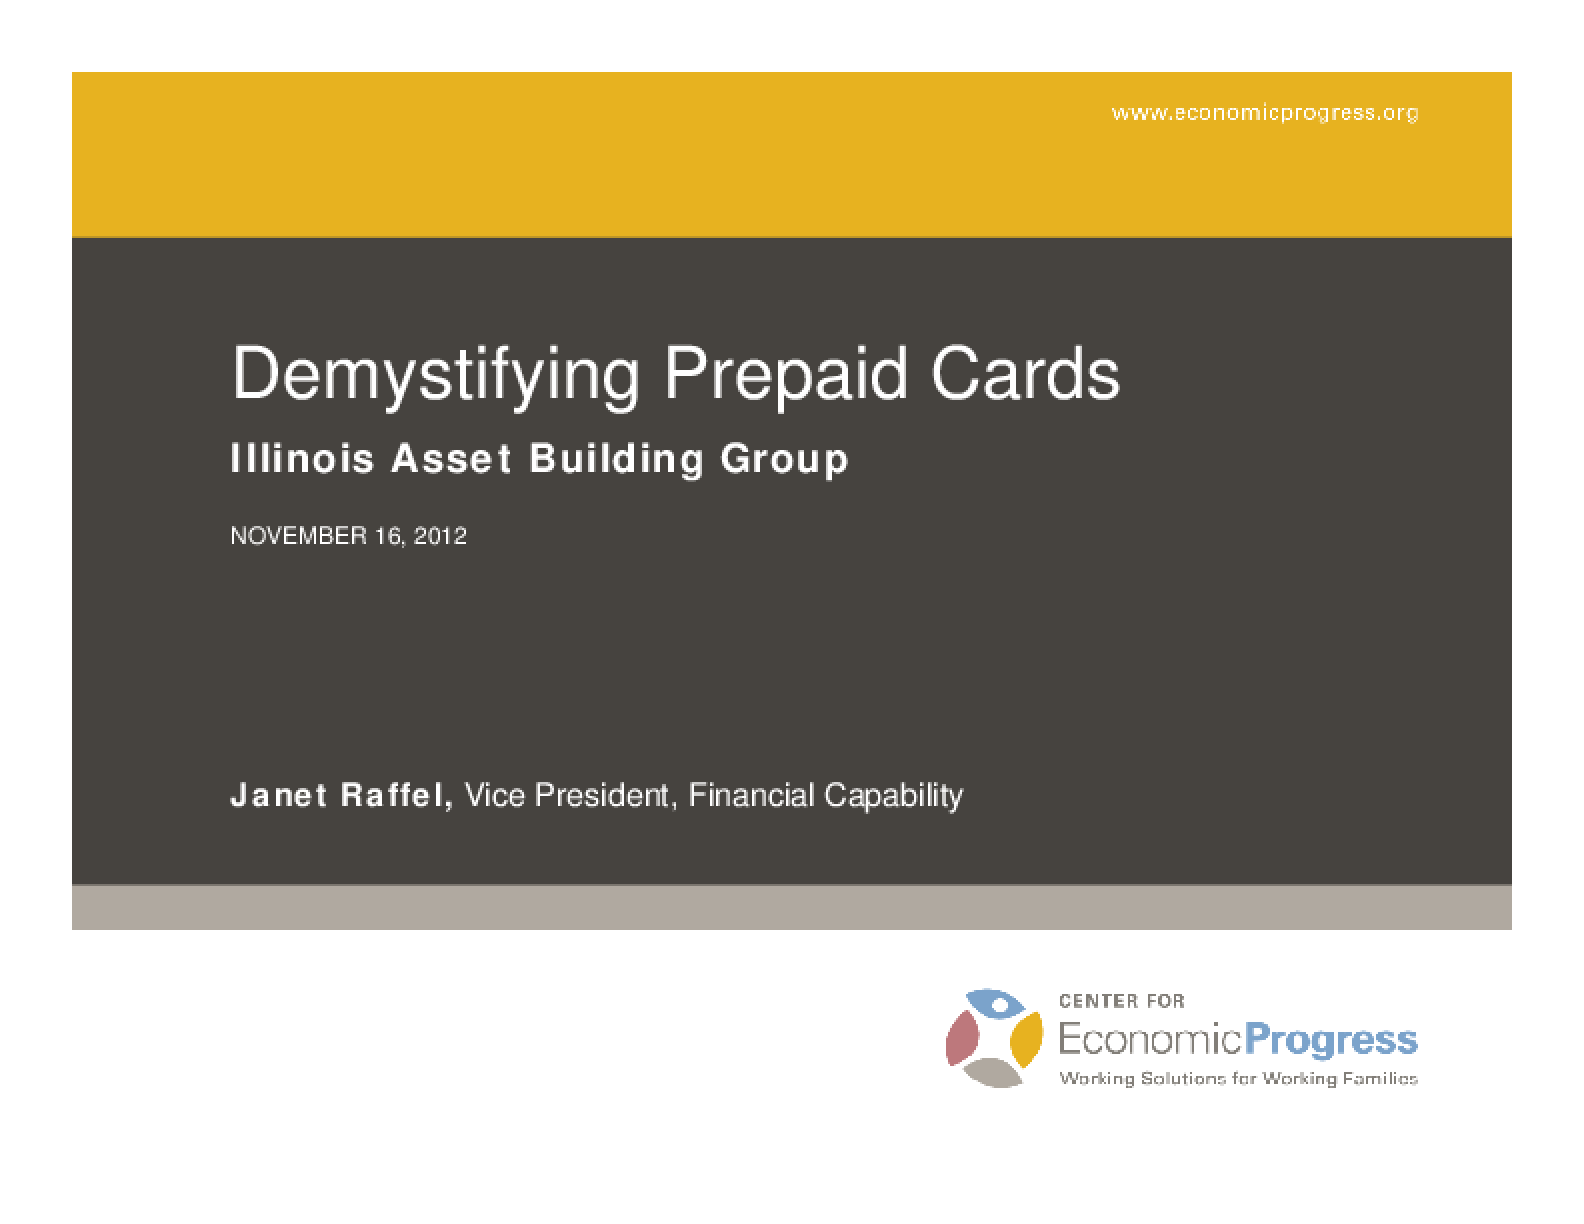 Demystifying Prepaid Cards